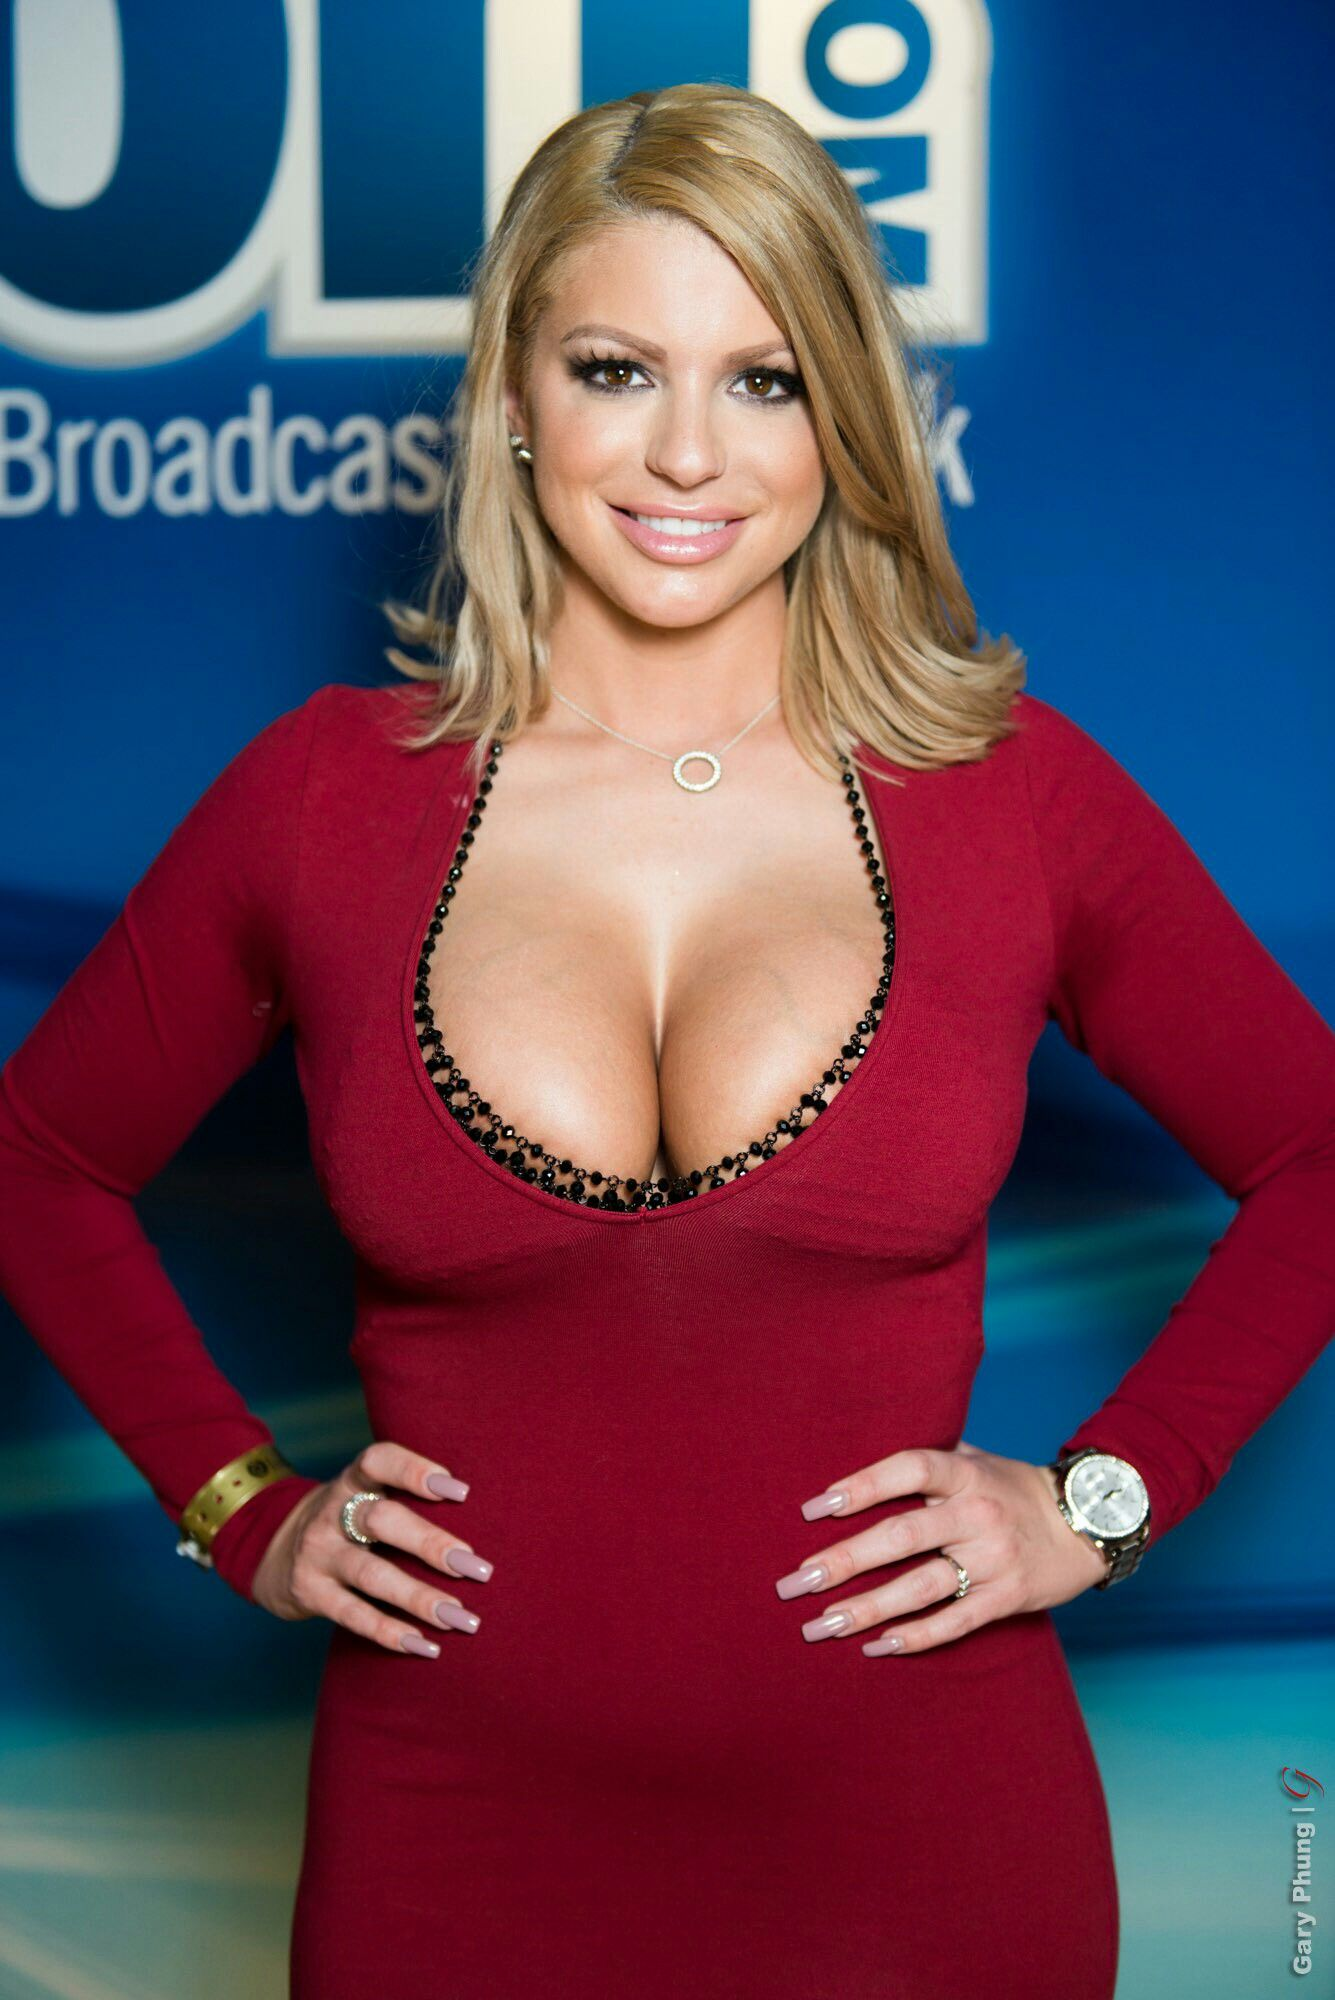 brooklyn chase | brooklyn chase | pinterest | curves, boobs and nice